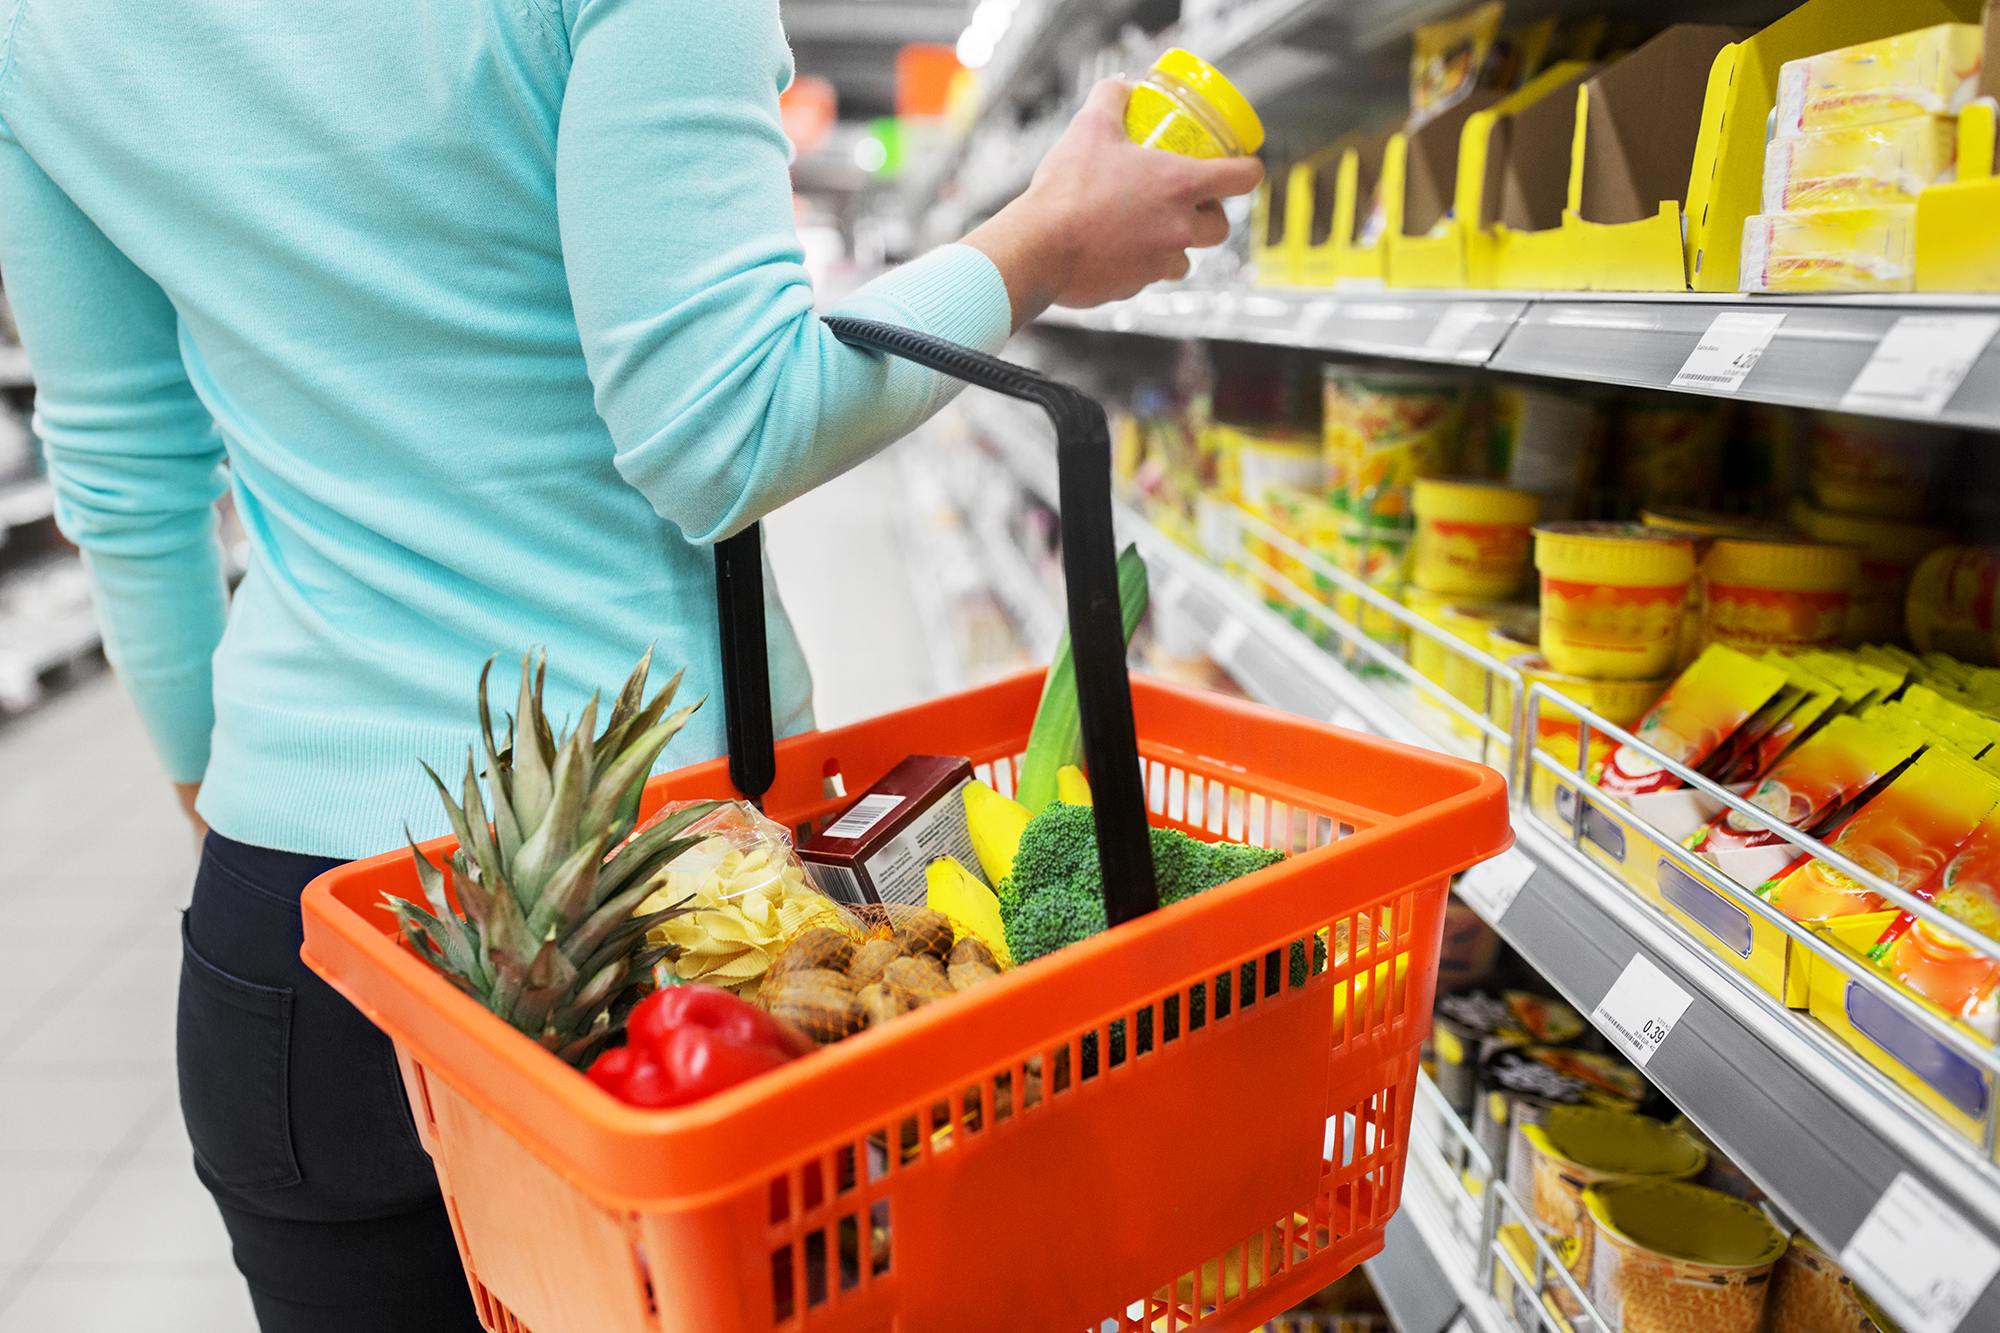 Woman shopping in a supermarket. (Image: Shutterstock)